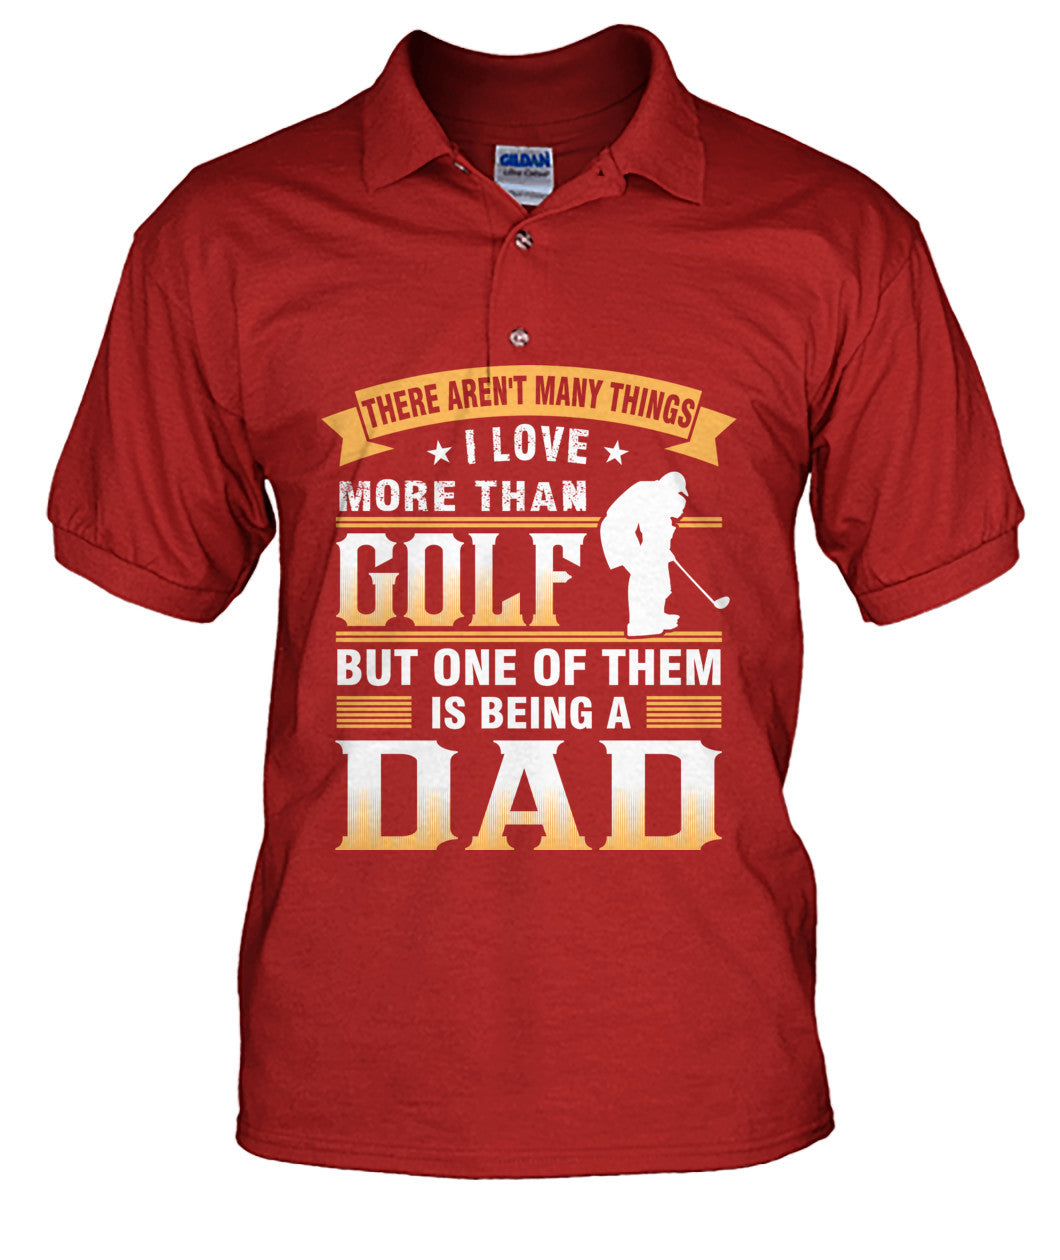 Golfer DAD shirt